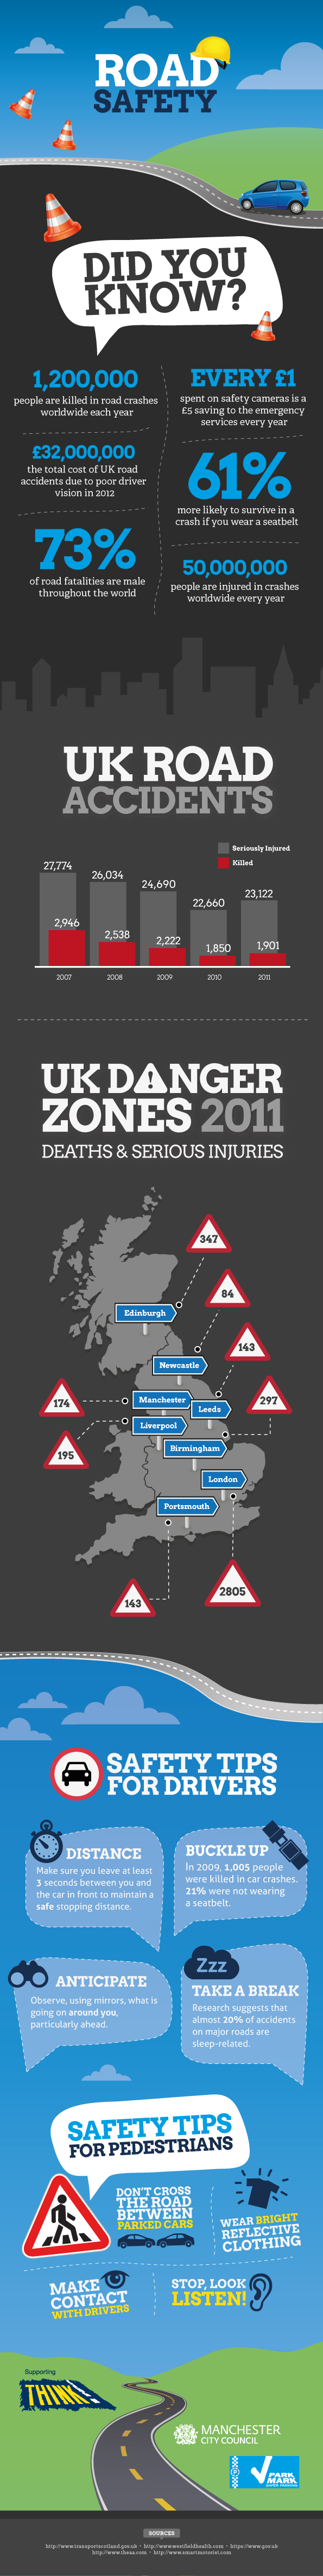 UK Road Safety